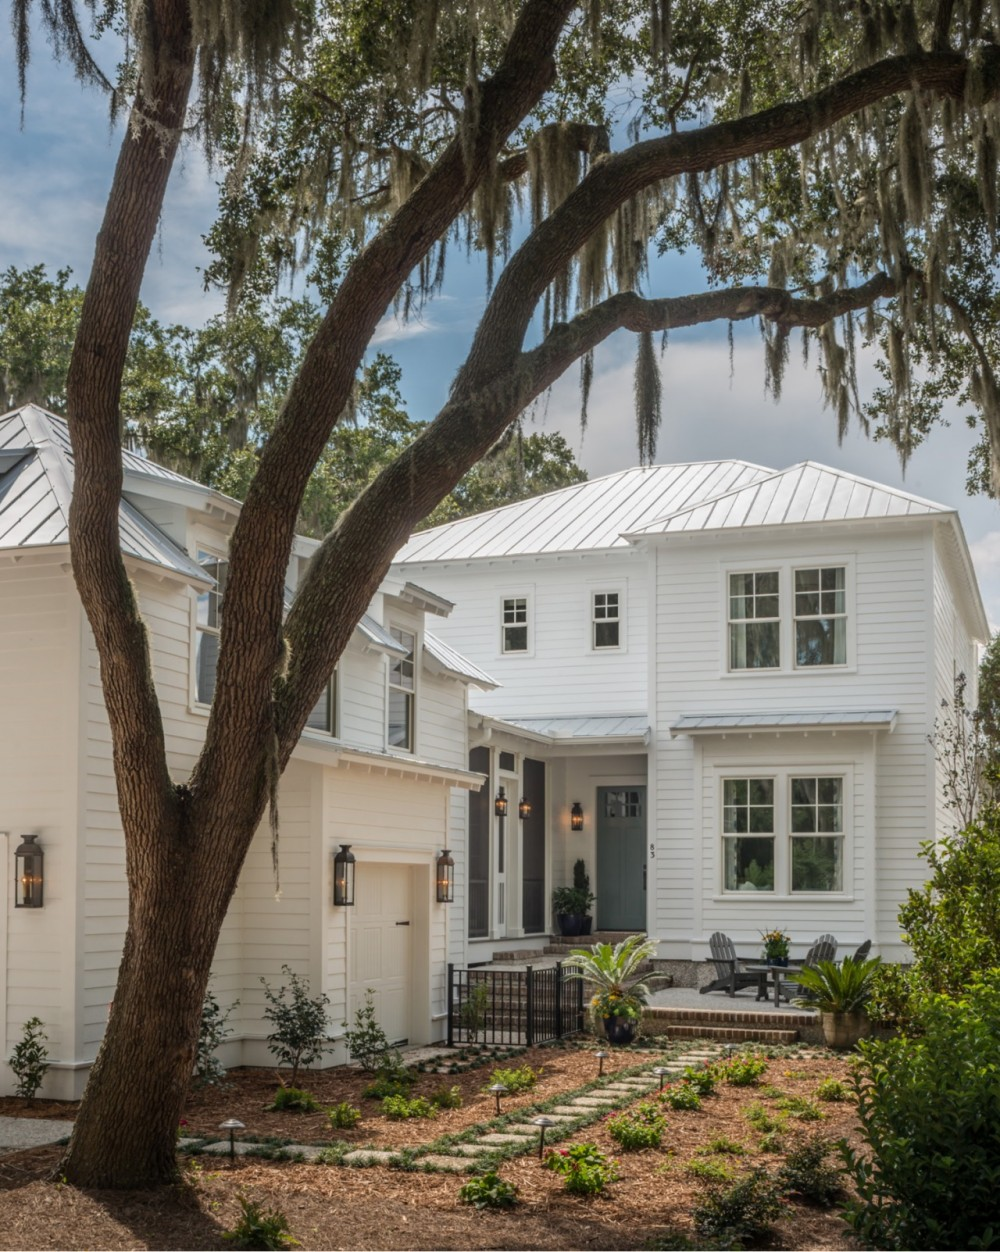 Deep eaves, exposed rafter tails, a metal roof for repelling heavy rains, and a tall live oak dripping with Spanish moss.